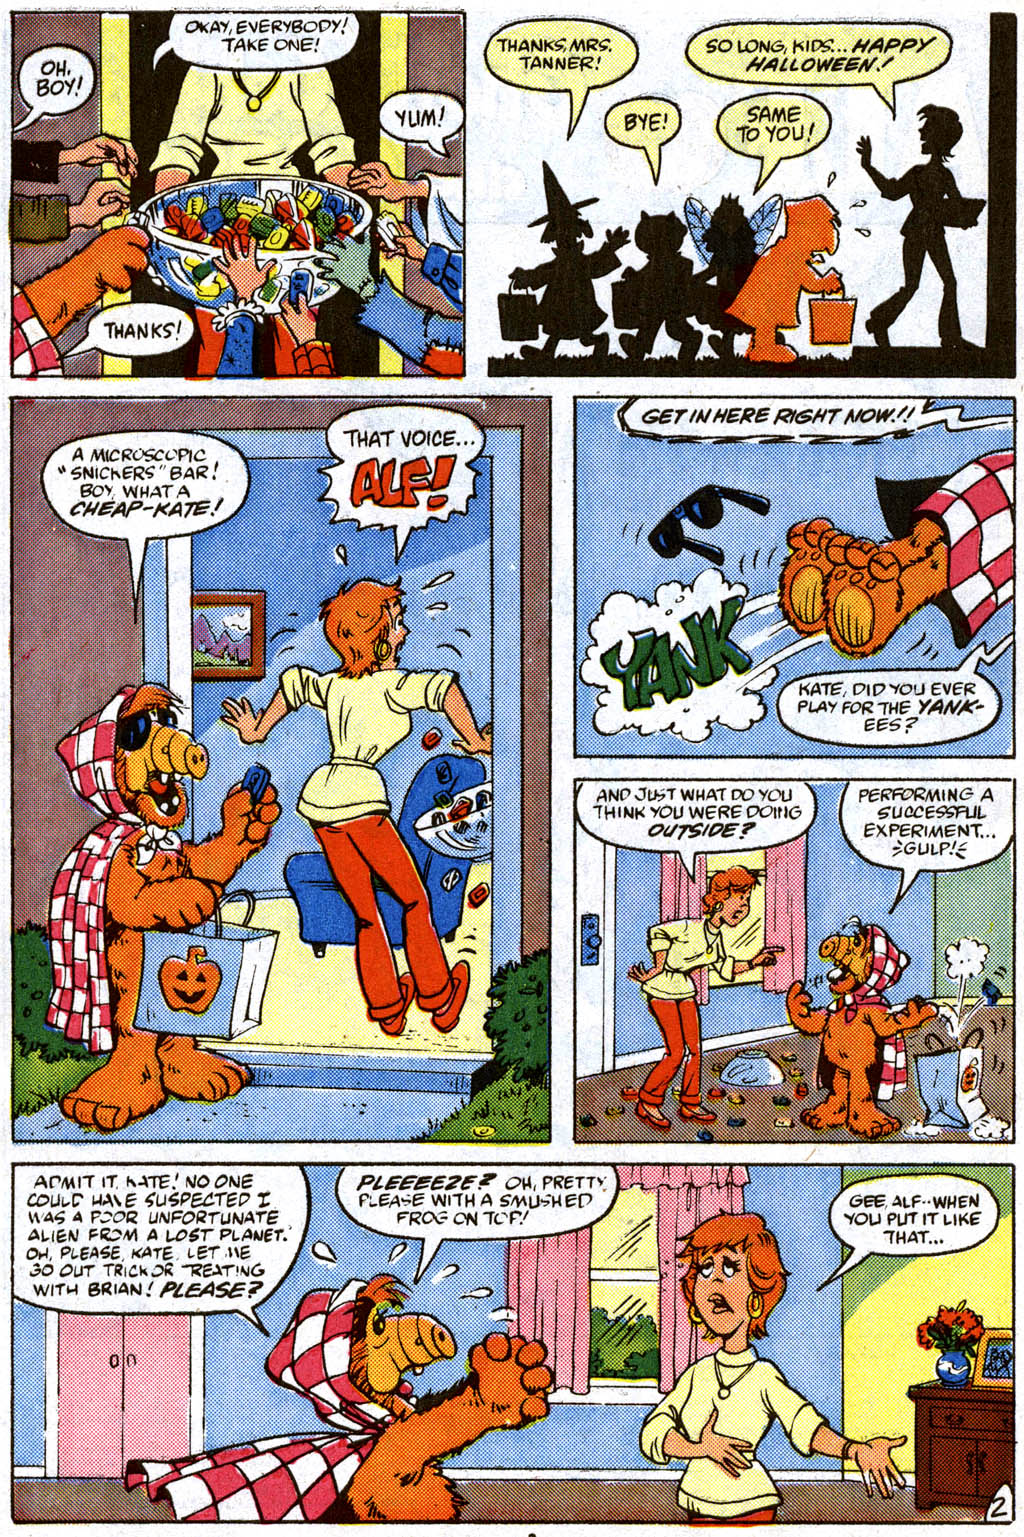 Read online ALF comic -  Issue #11 - 3